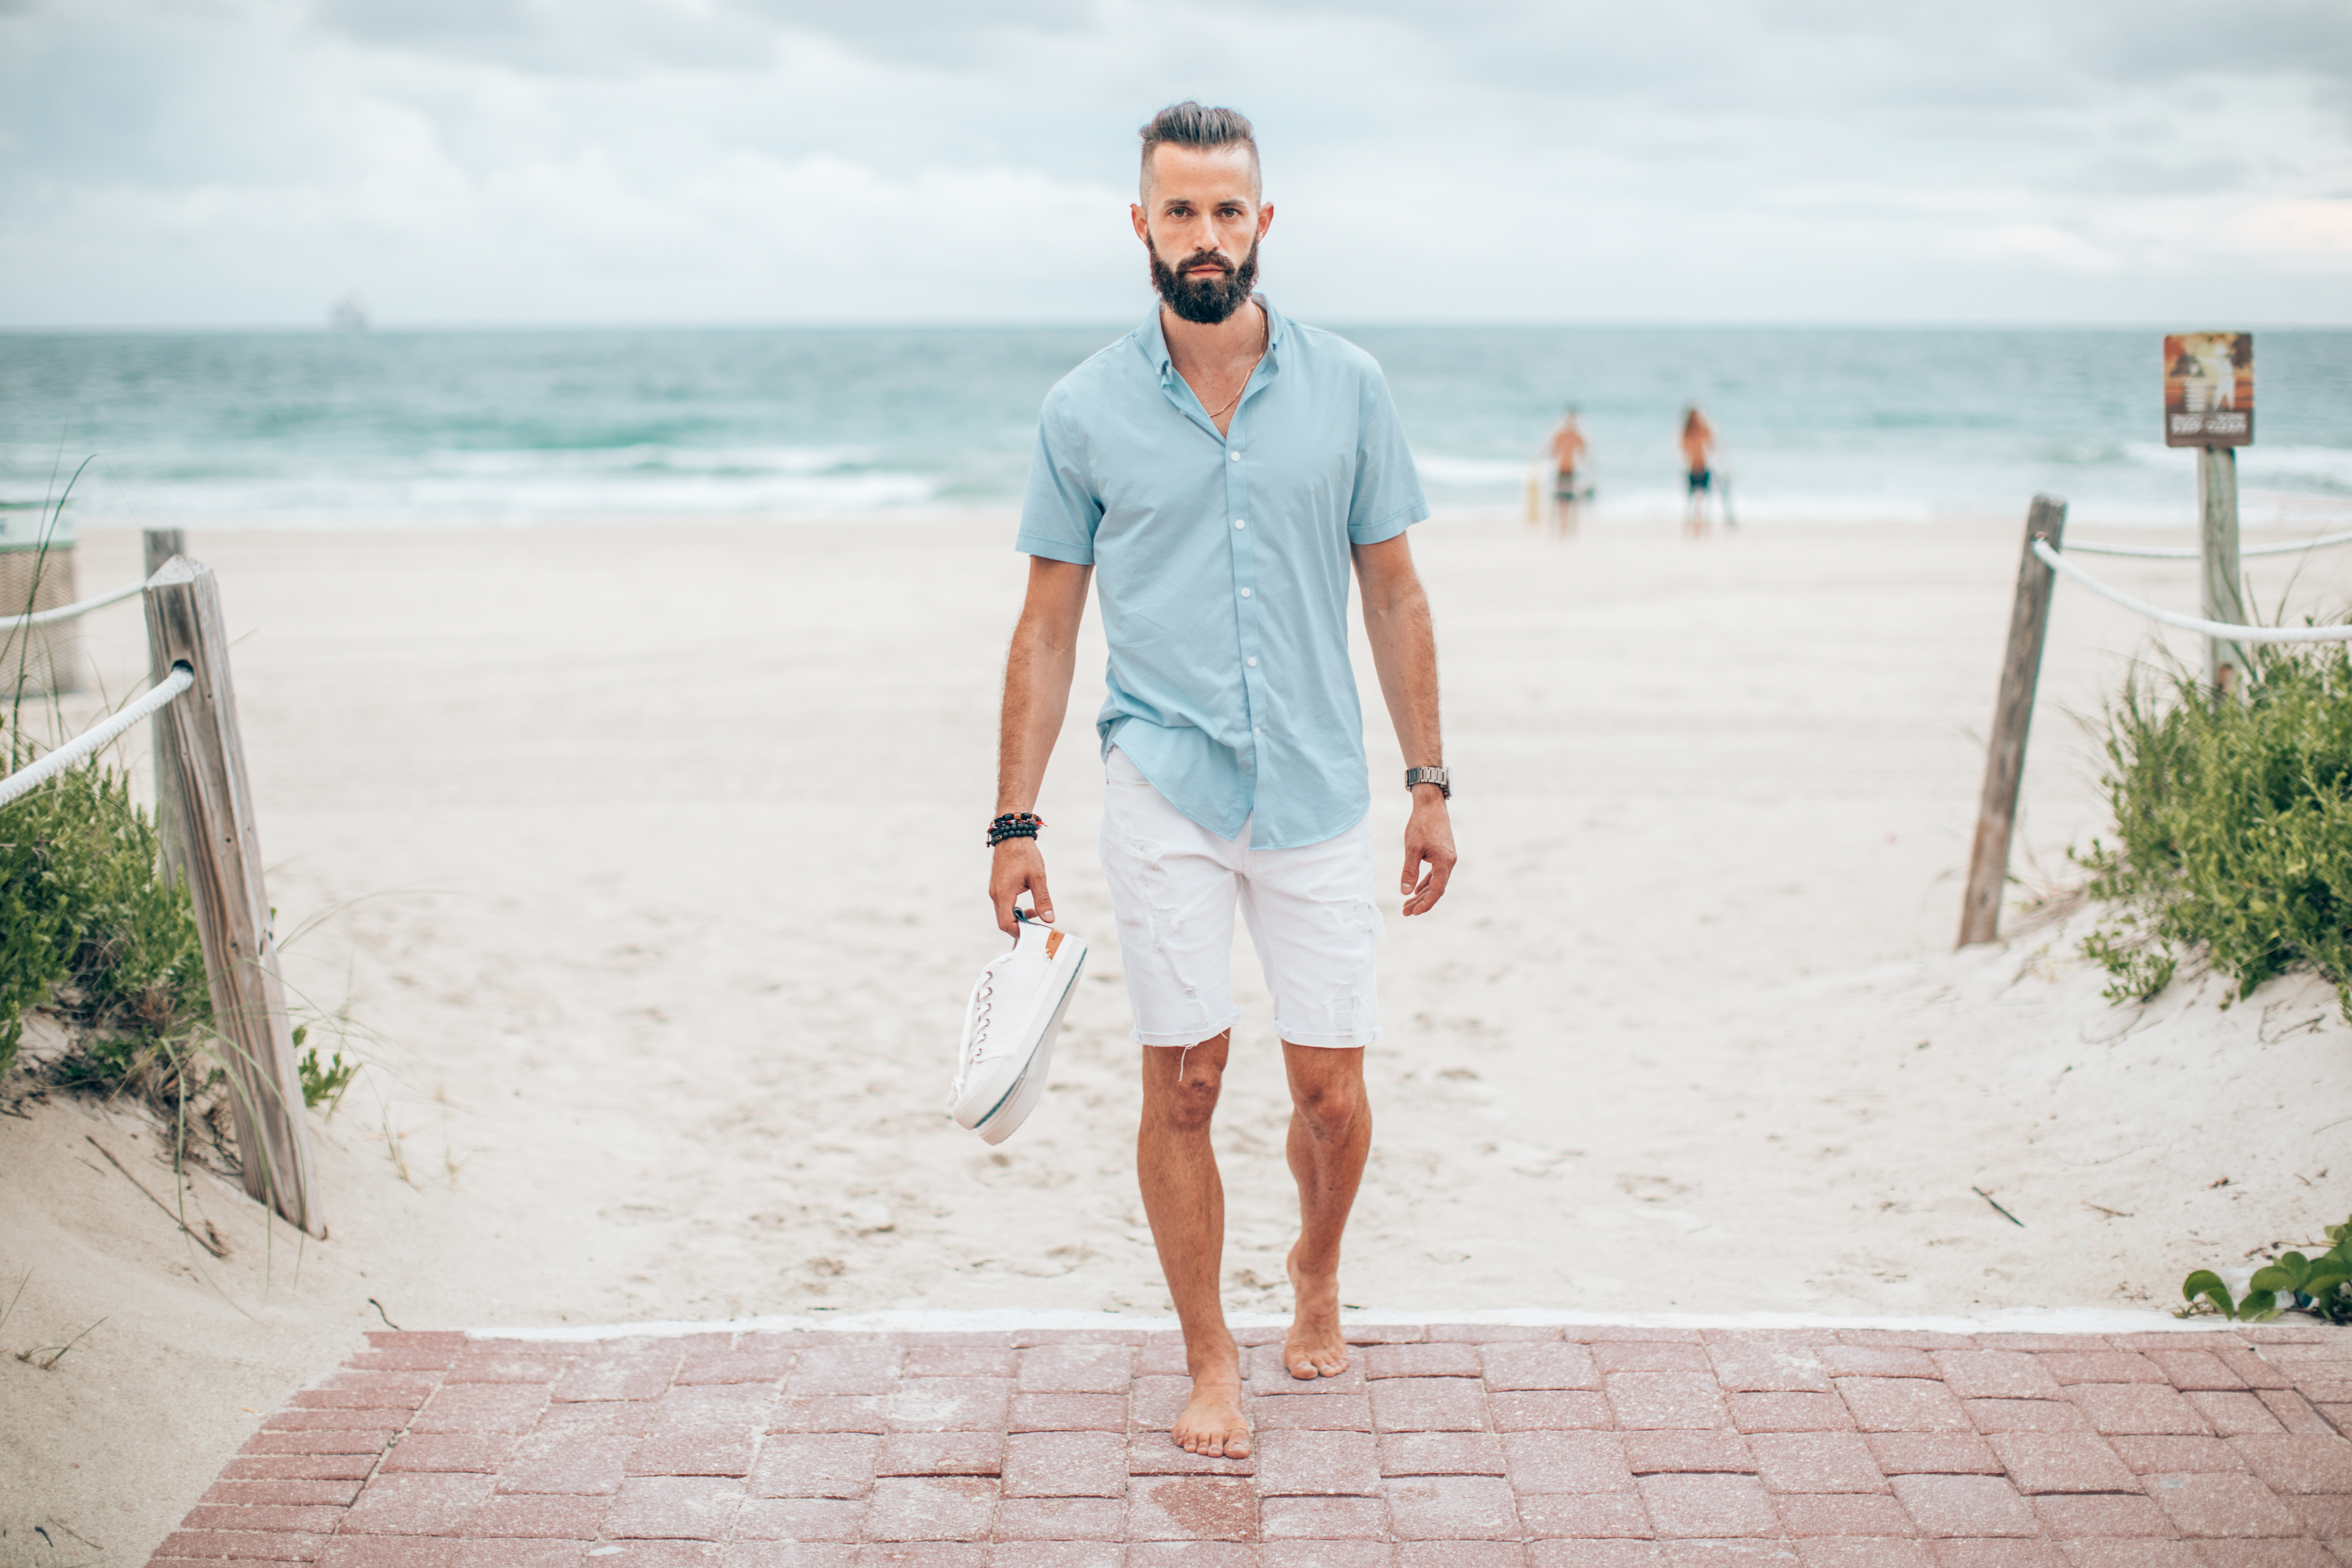 Michael Checkers summer street style fashion photo in South Beach Miami holding shoes on the beach walking foward